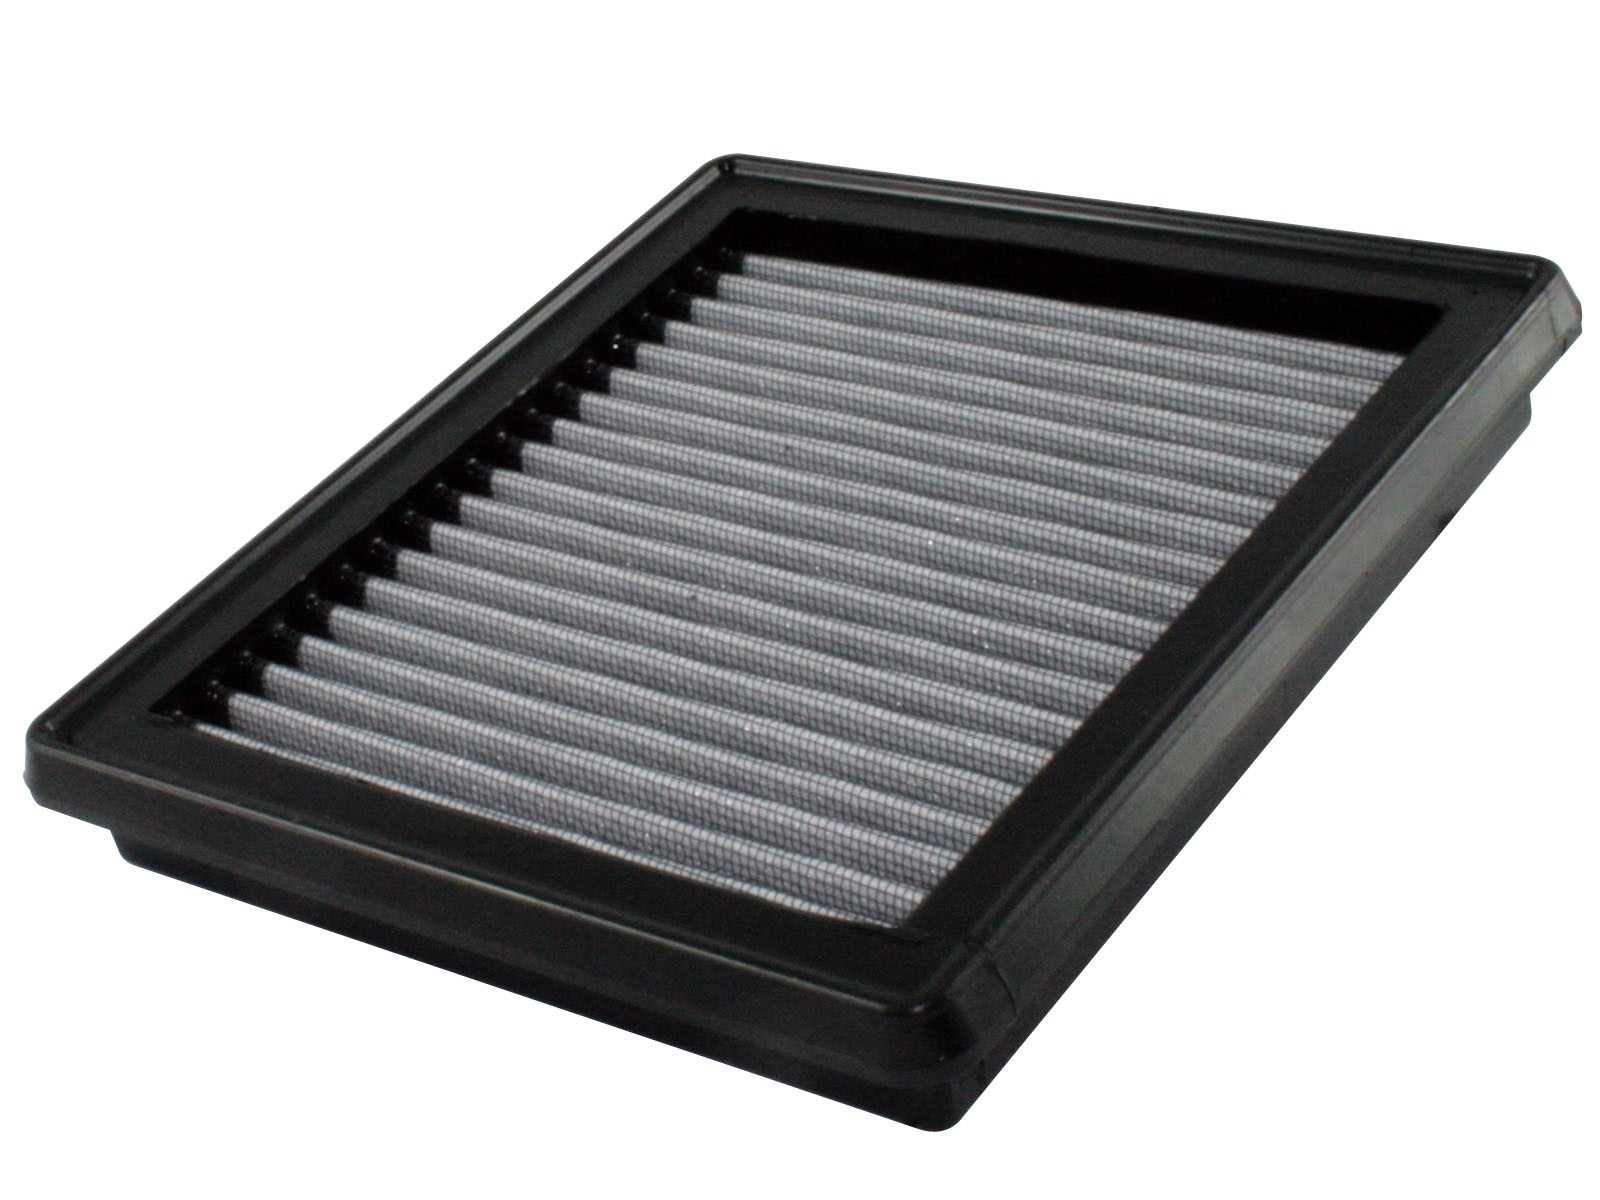 aFe POWER 31-10033 Magnum FLOW Pro DRY S Air Filter